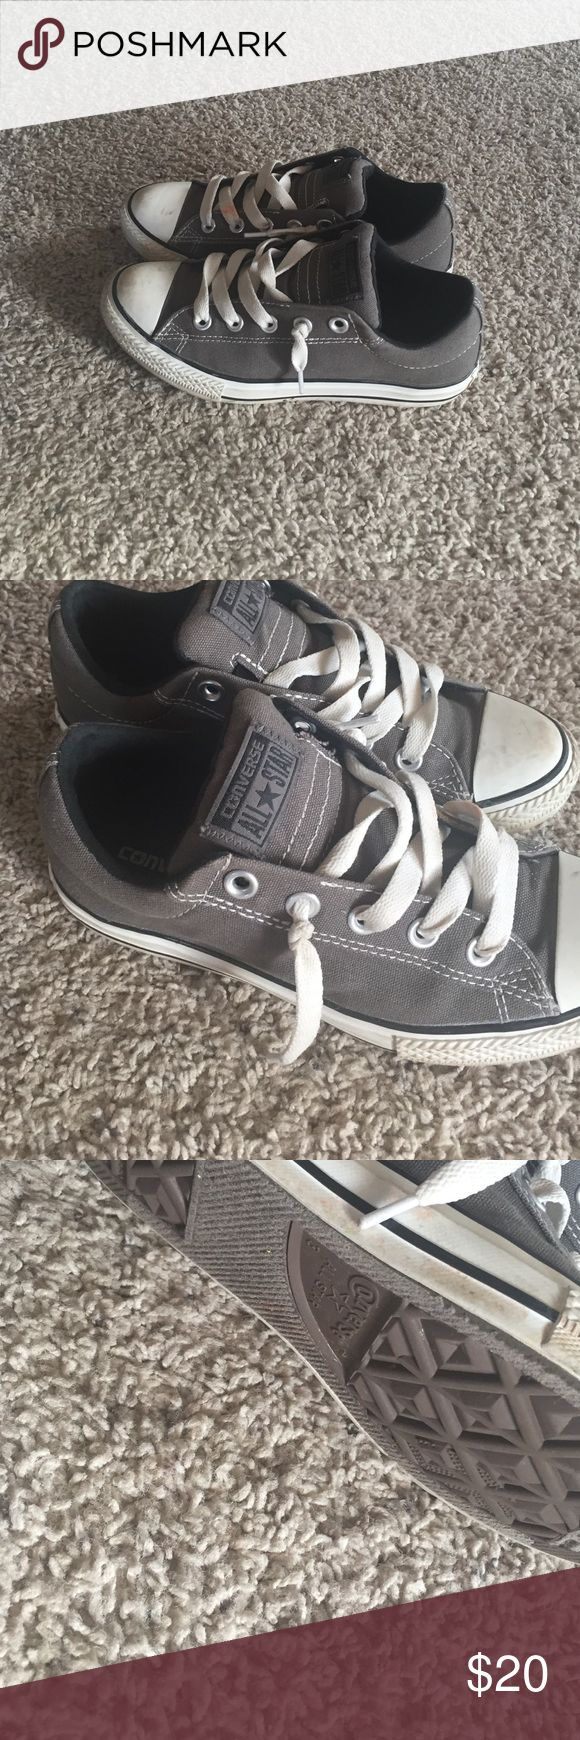 Girls tennis shoes Girls all star converse in good condition. Have a few stains on the shoes laces  (see pic) Converse Shoes Sneakers